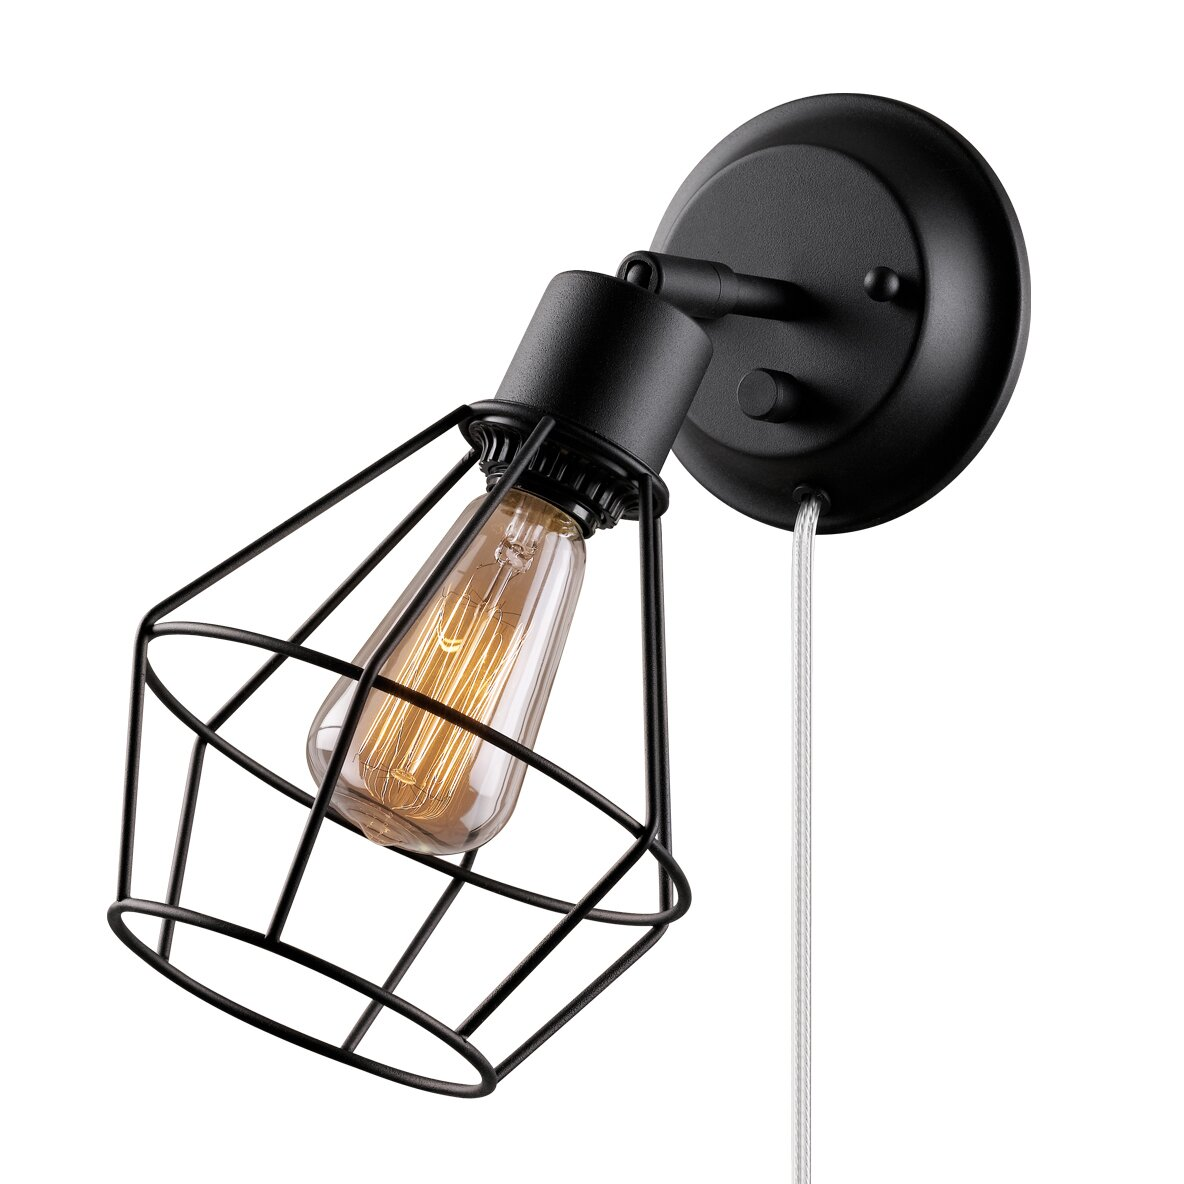 Industrial Wall Sconce Plug In : Globe Electric Company Adison 1 Light Plug In Industrial Cage Wall Sconce with Hardwire ...